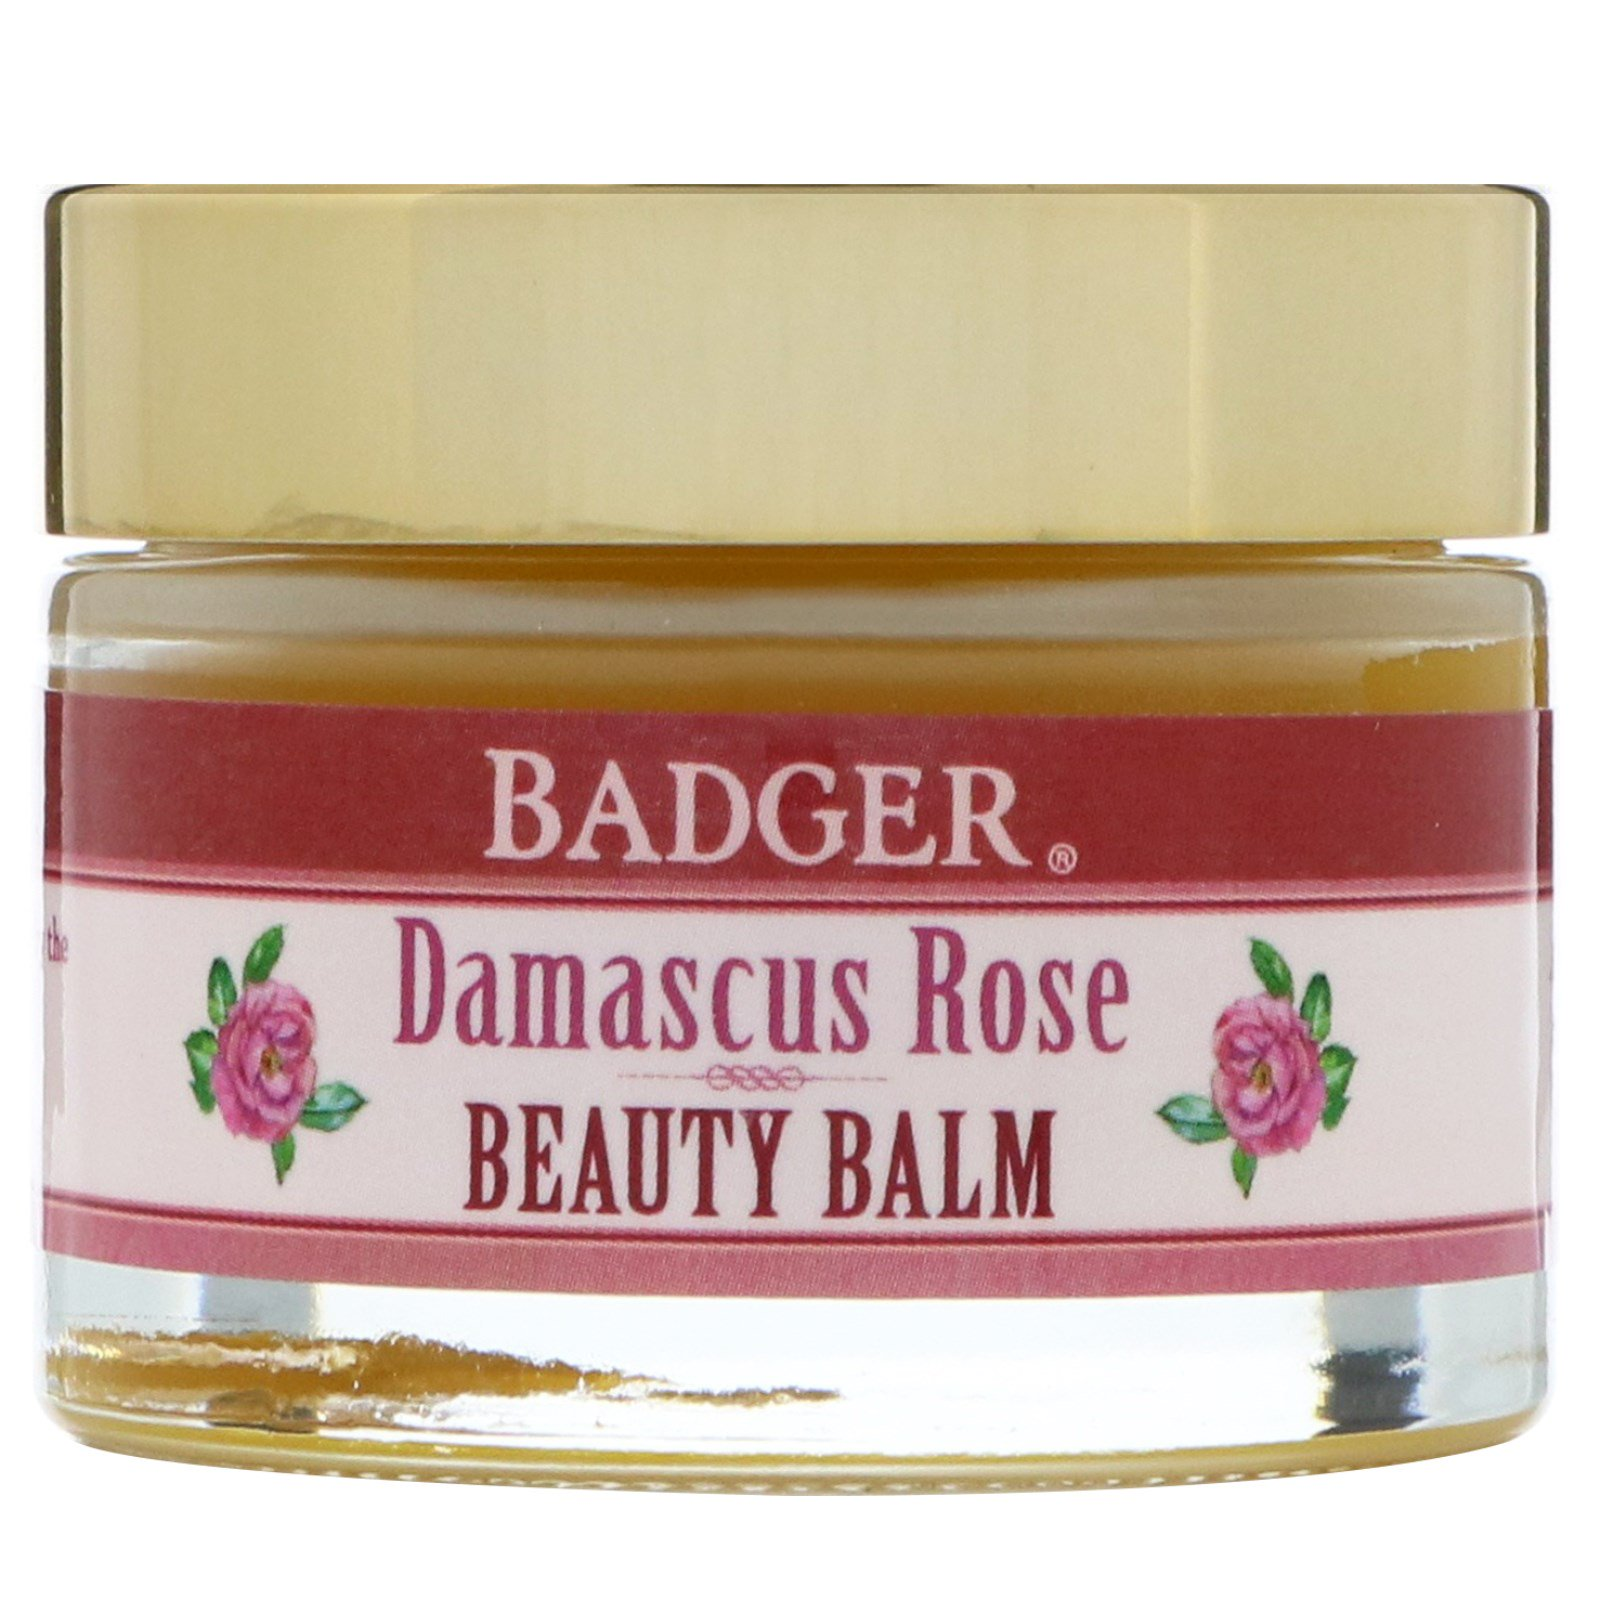 Damascus Rose Beauty Balm by badger #18